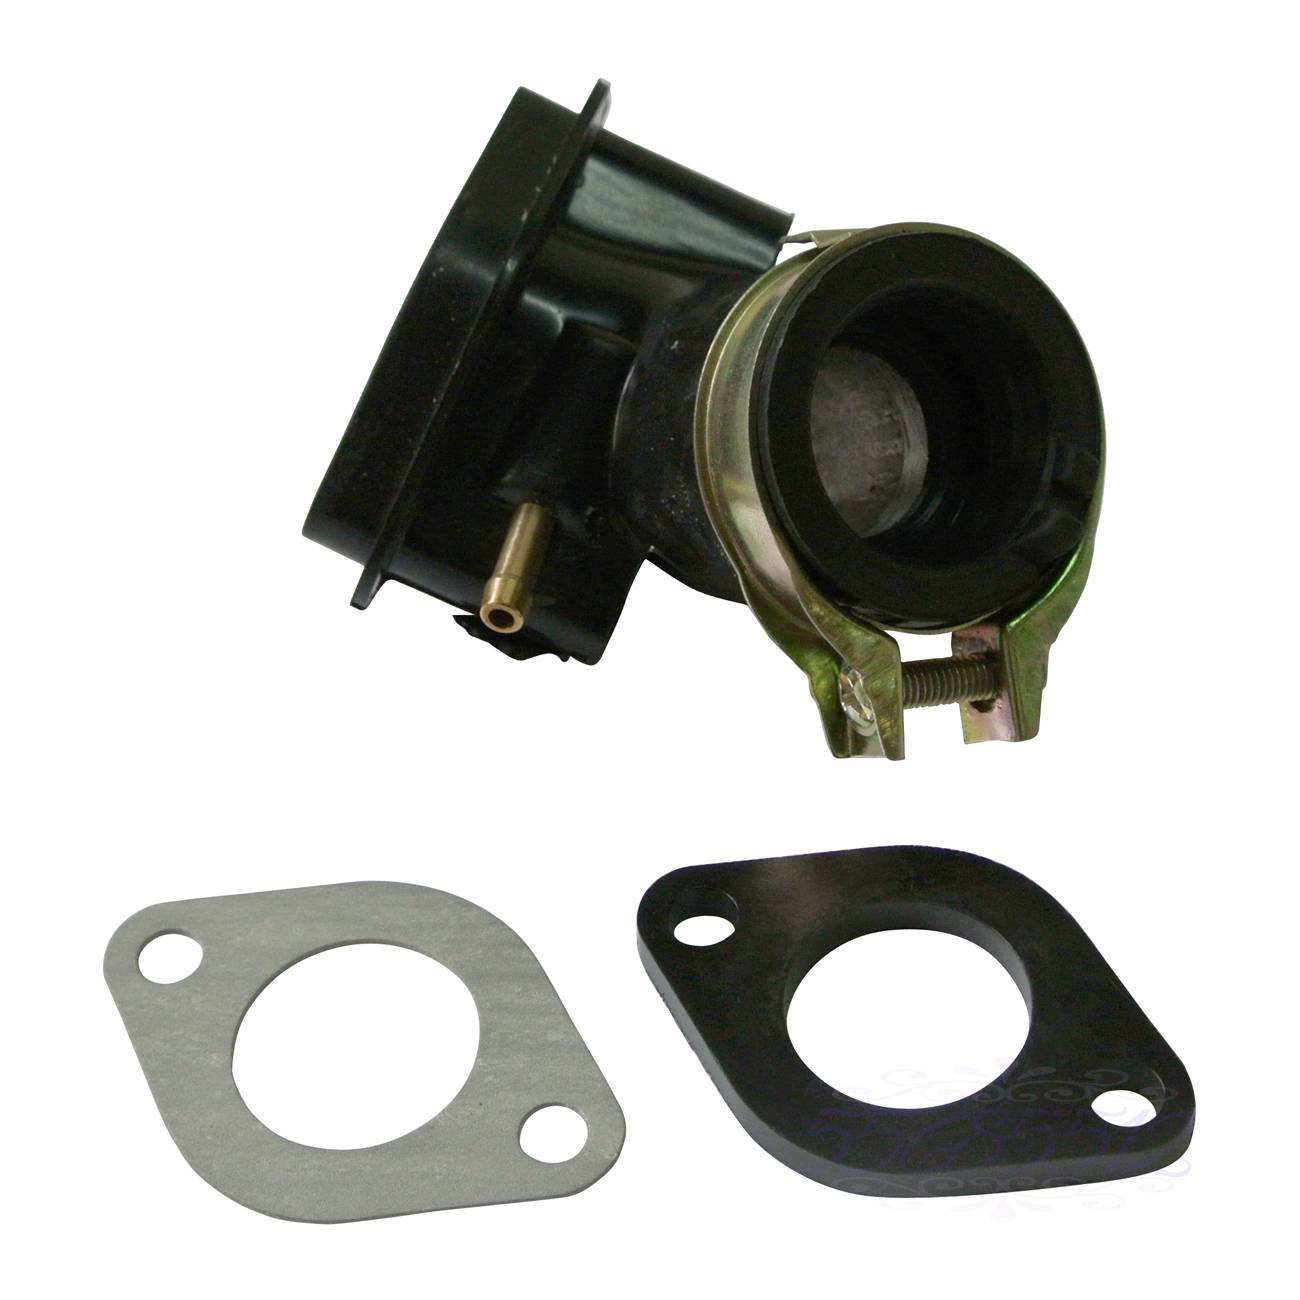 Intake Manifold Inlet Pipe + Spacer For <font><b>GY6</b></font> <font><b>50cc</b></font> SUNL Baotian Znen Jmstar Moped Scooter image